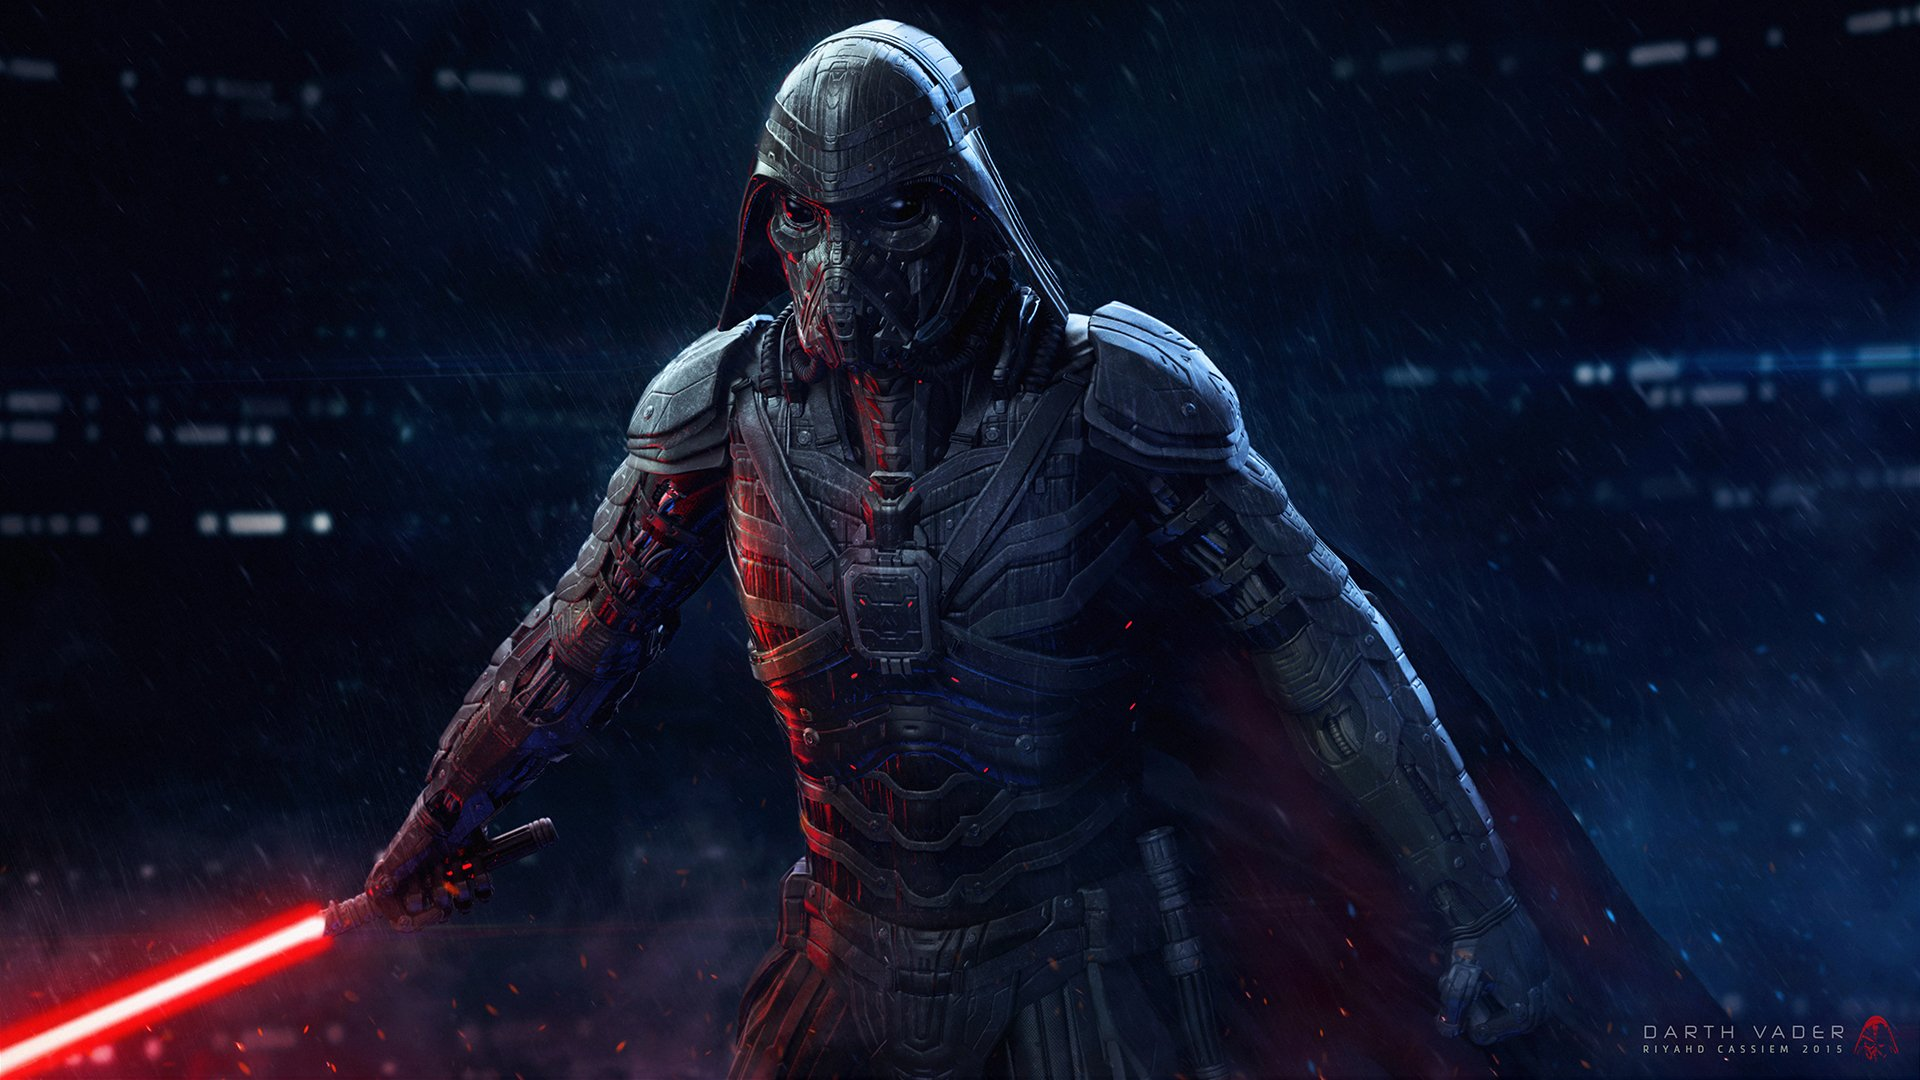 Darth Vader 1920x1080 Wallpaper Posted By Michelle Tremblay